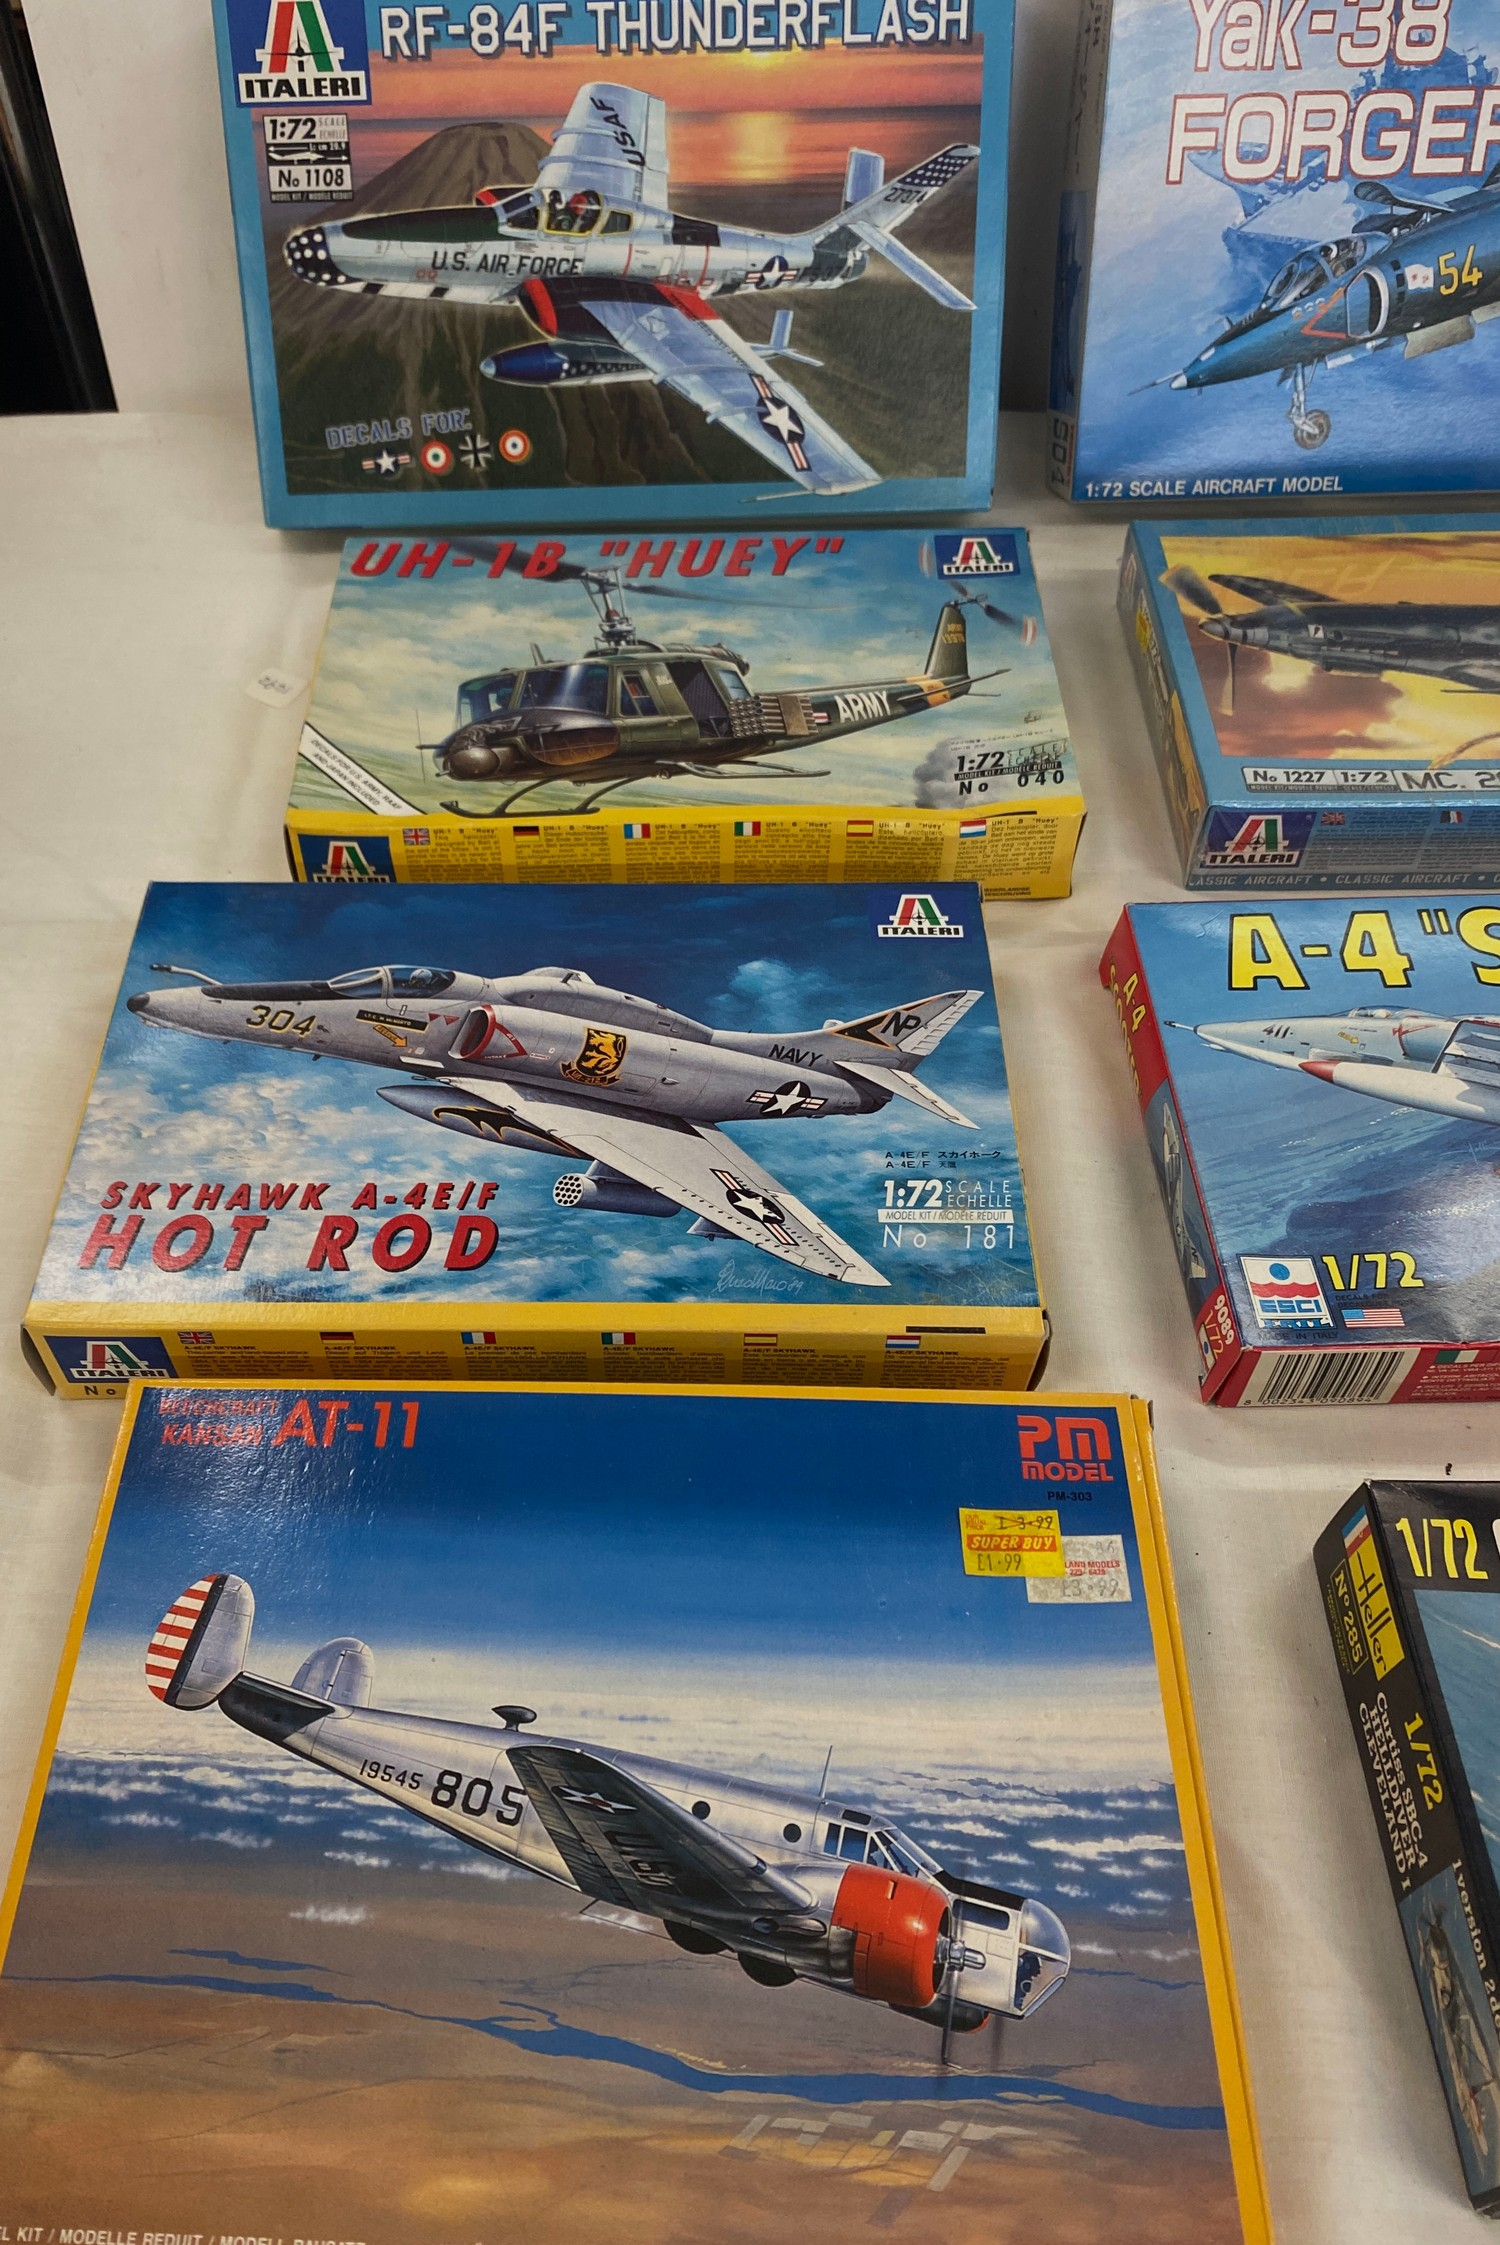 Selection of 8 boxed craft models to include, A-4 scooter, RF-84F Thunderflash, UH-1B Huey,Skyhawk - Image 2 of 3